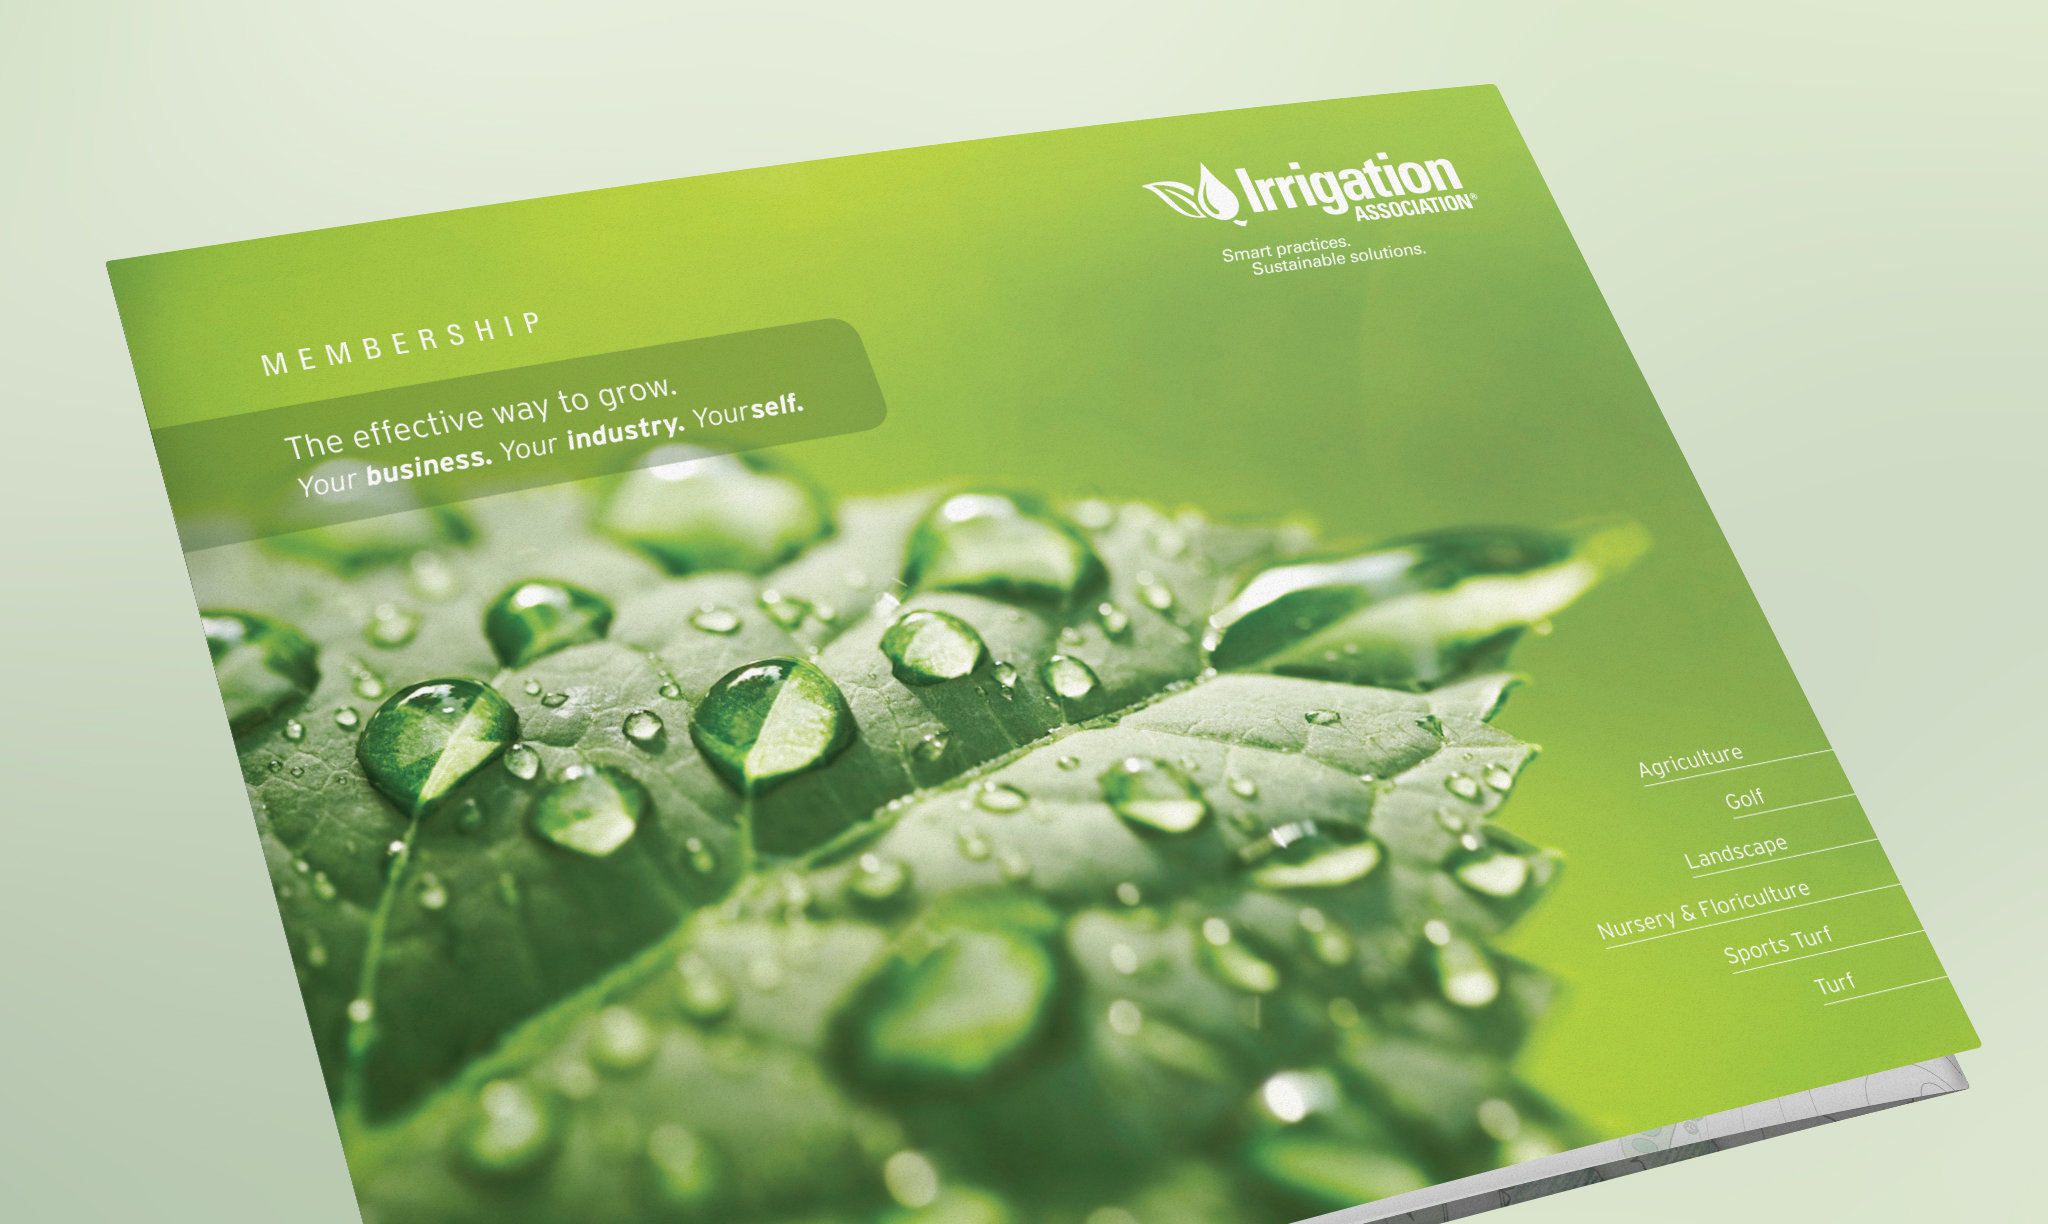 Irrigation Association Membership Brochure